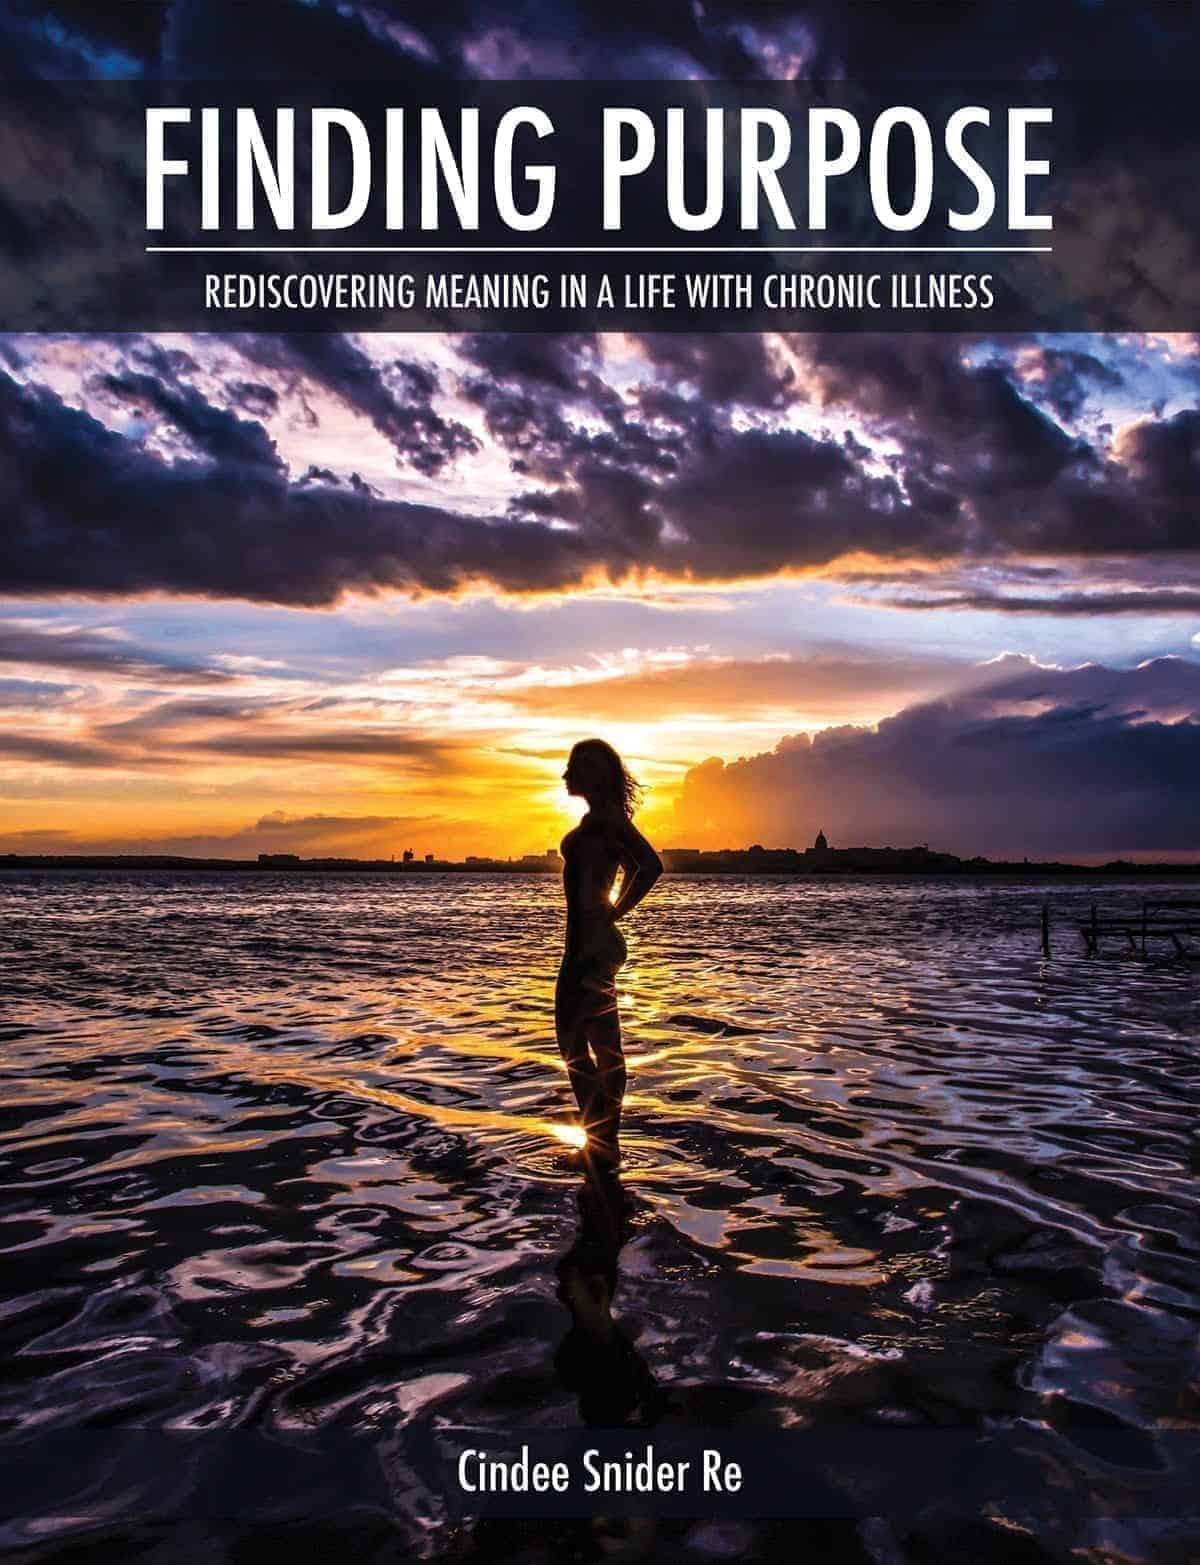 Finding Purpose: Rediscovering Meaning in a Life with Chronic Illness (Chronic Joy Thrive Series) (Volume 2)